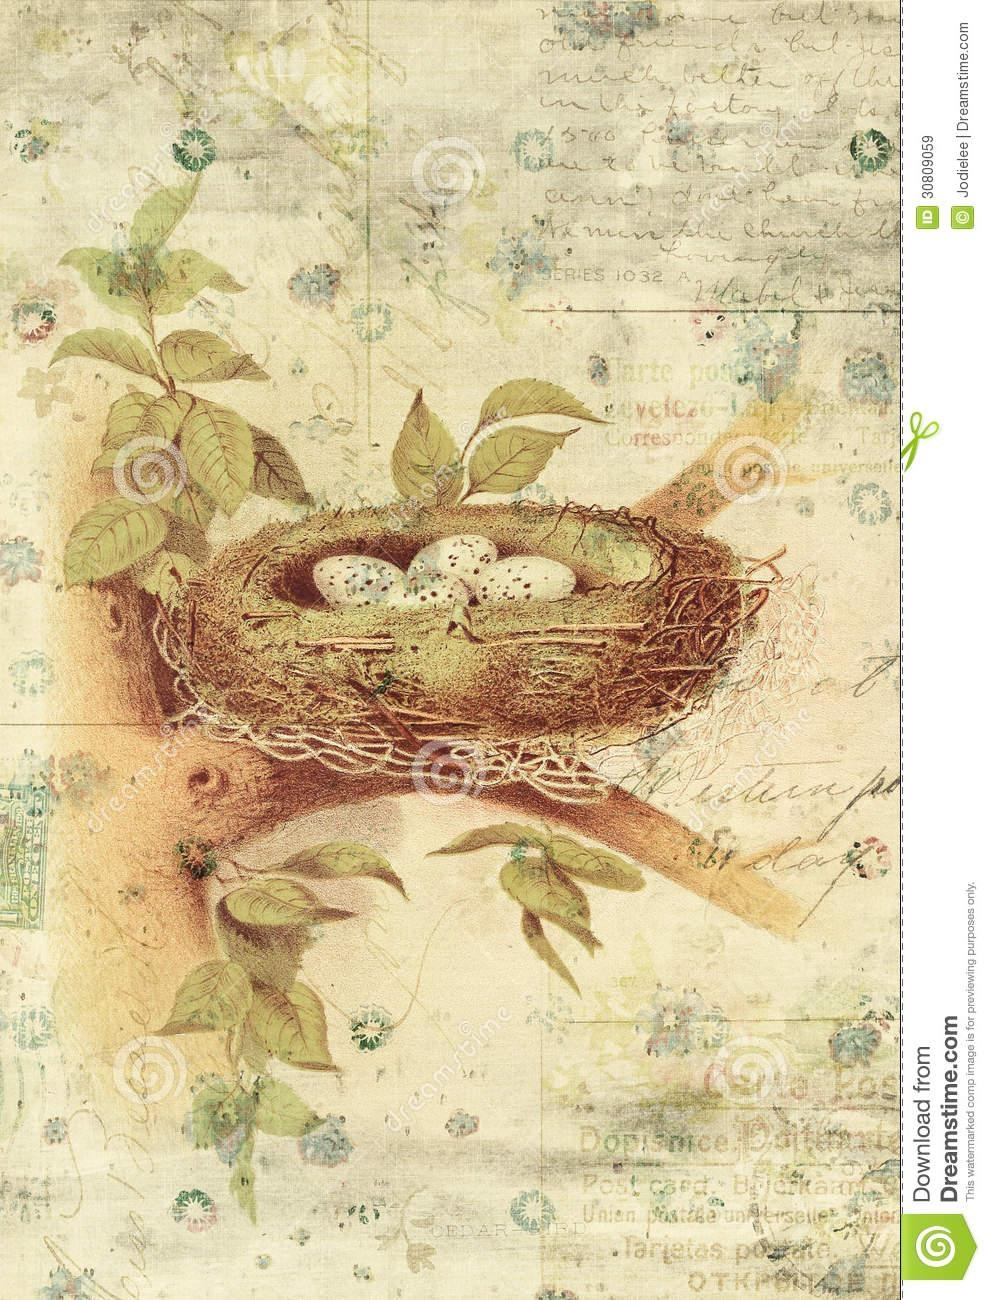 Nest And Bird Eggs Botanical Vintage Style Wall Art With Textured for Vintage Style Wall Art